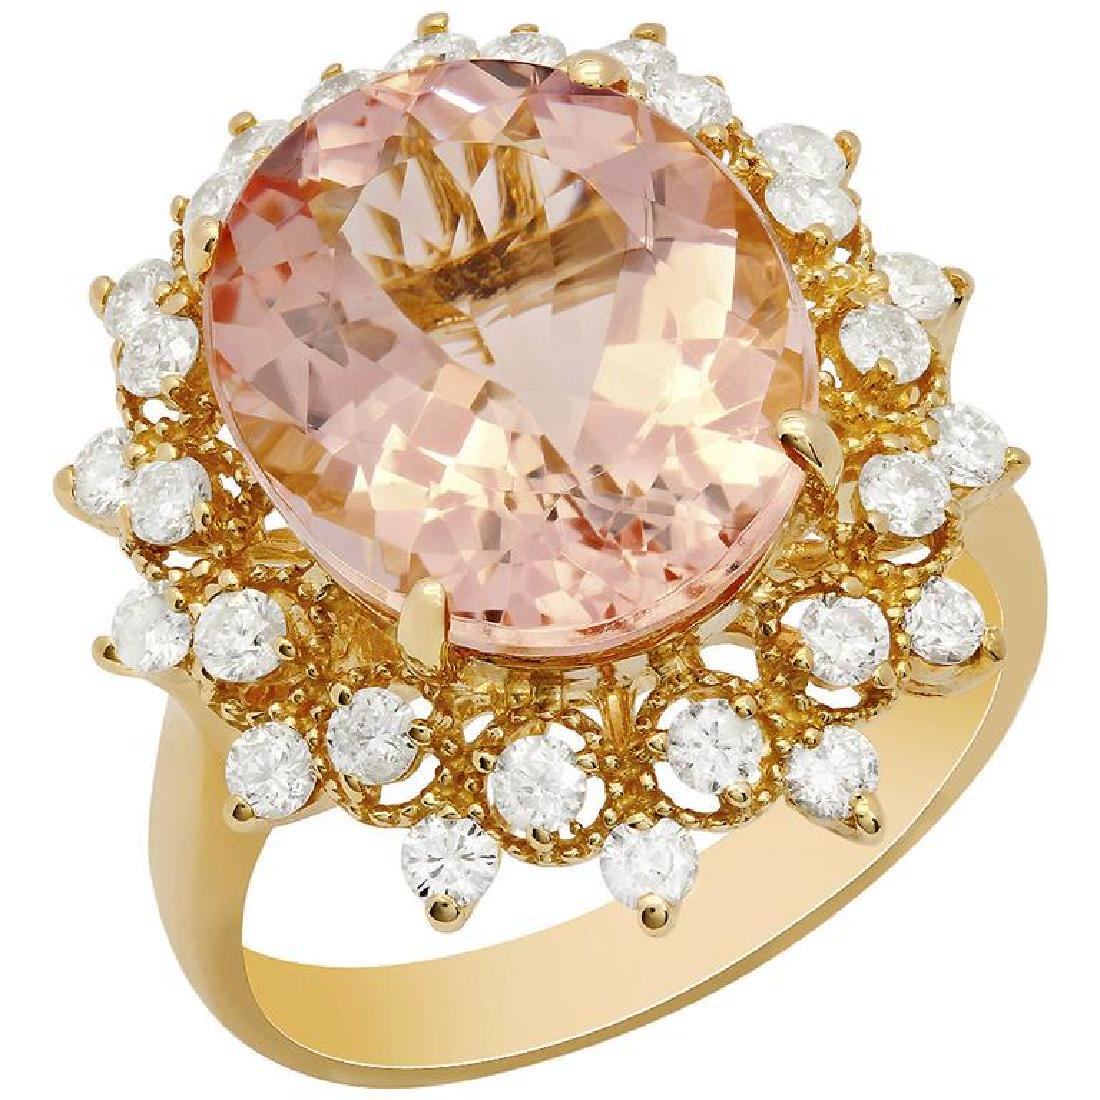 14k Yellow Gold 6.33ct Morganite 0.80ct Diamond Ring